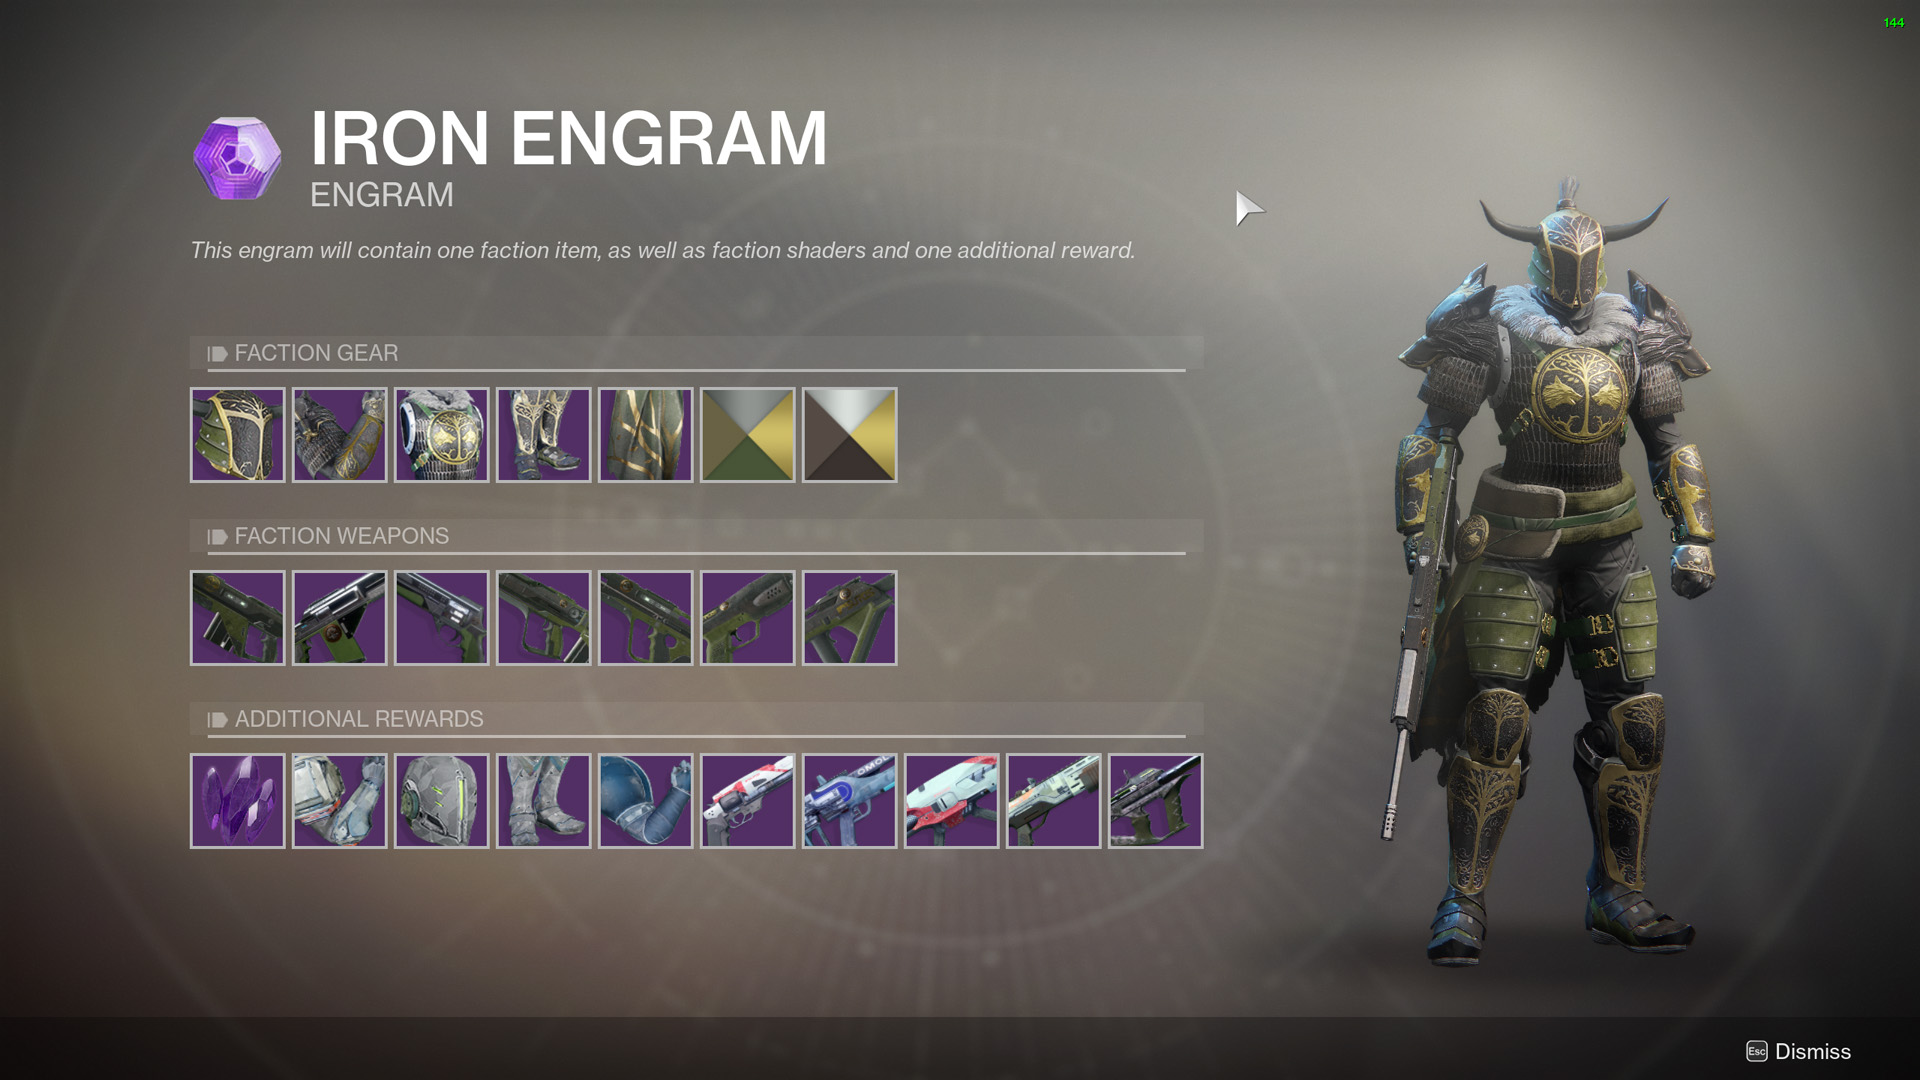 Destiny 2 Iron Banner Packages - All Weapons and Armor